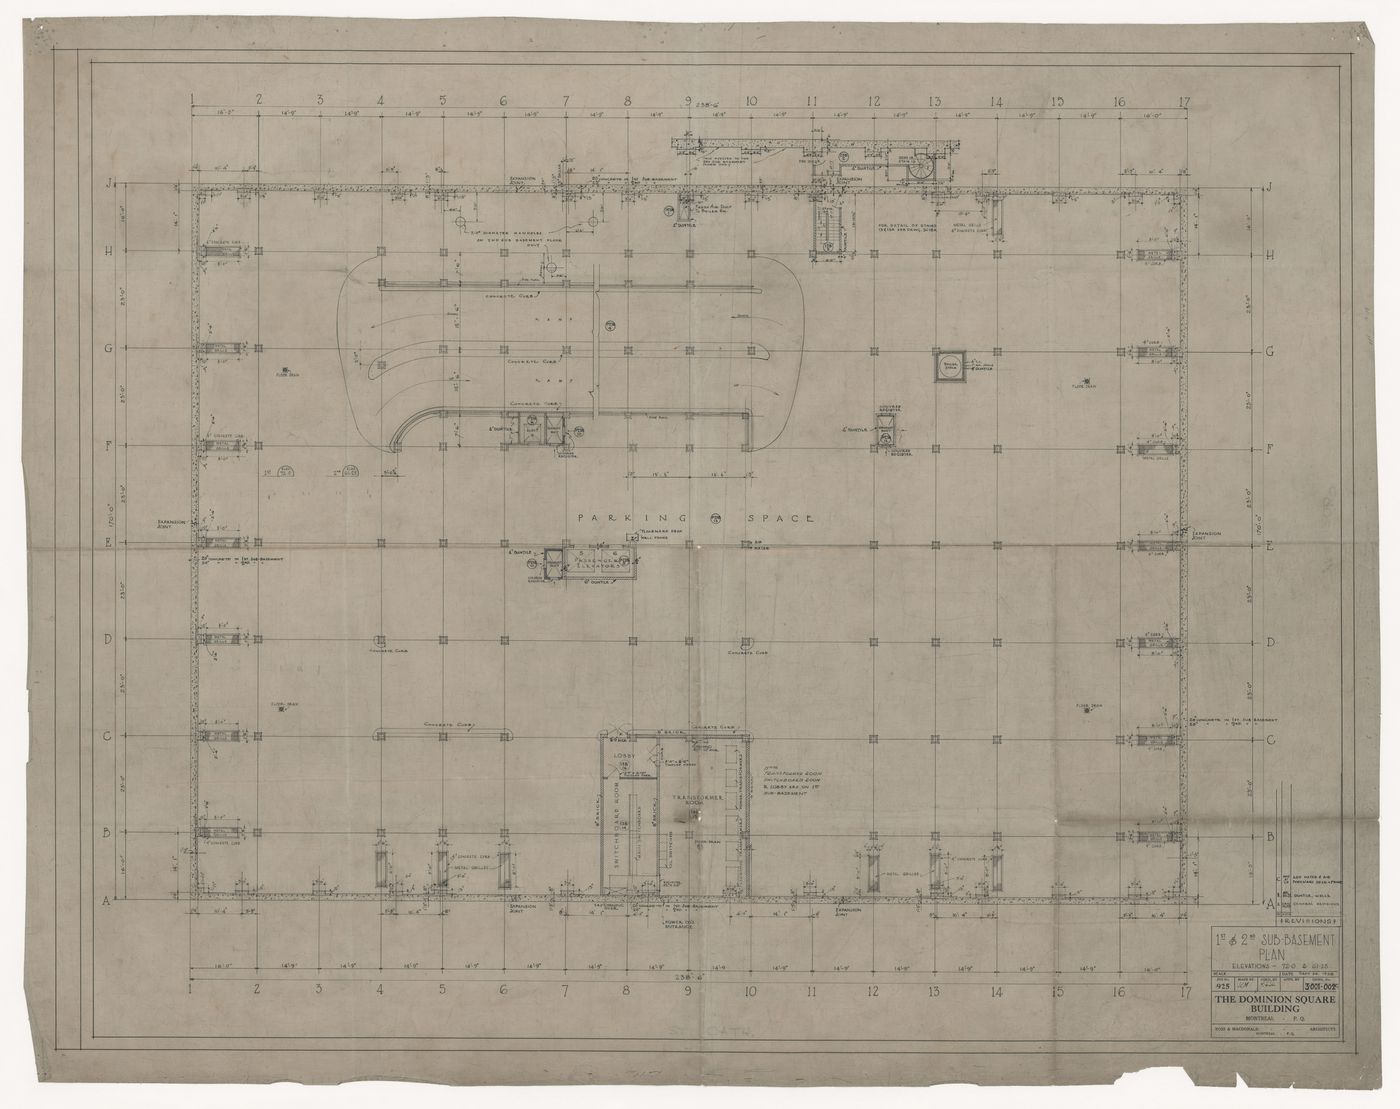 Sub-basement plan for Dominion Square Building, Montreal, Québec